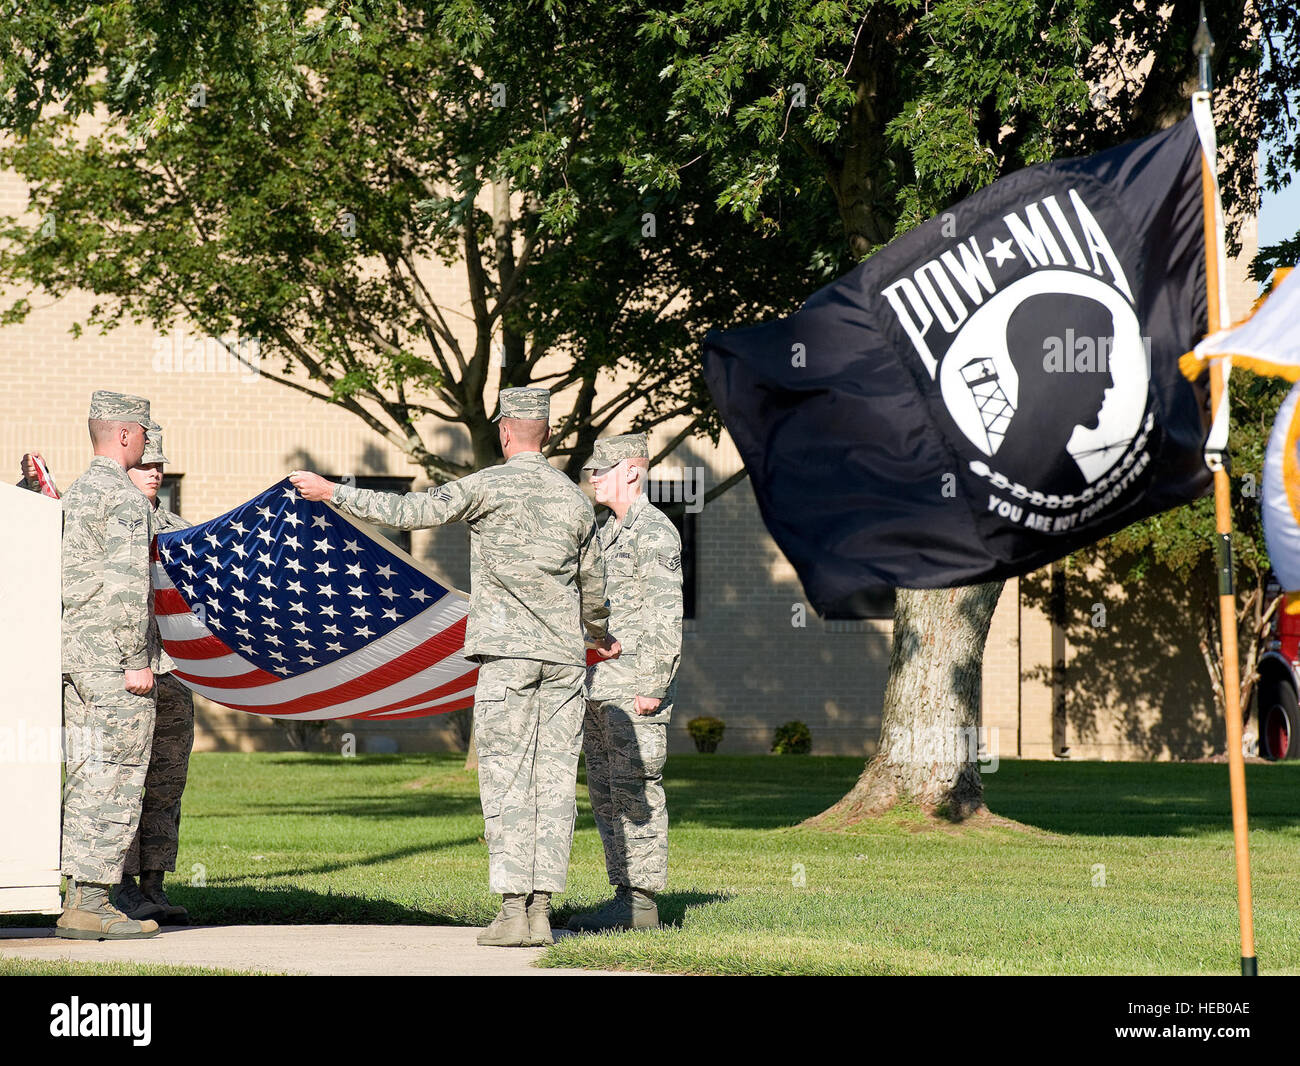 Members of the Dover Air Force Base Honor Guard fold the U.S. flag during a prisoner of war/missing in action ceremony - Stock Image